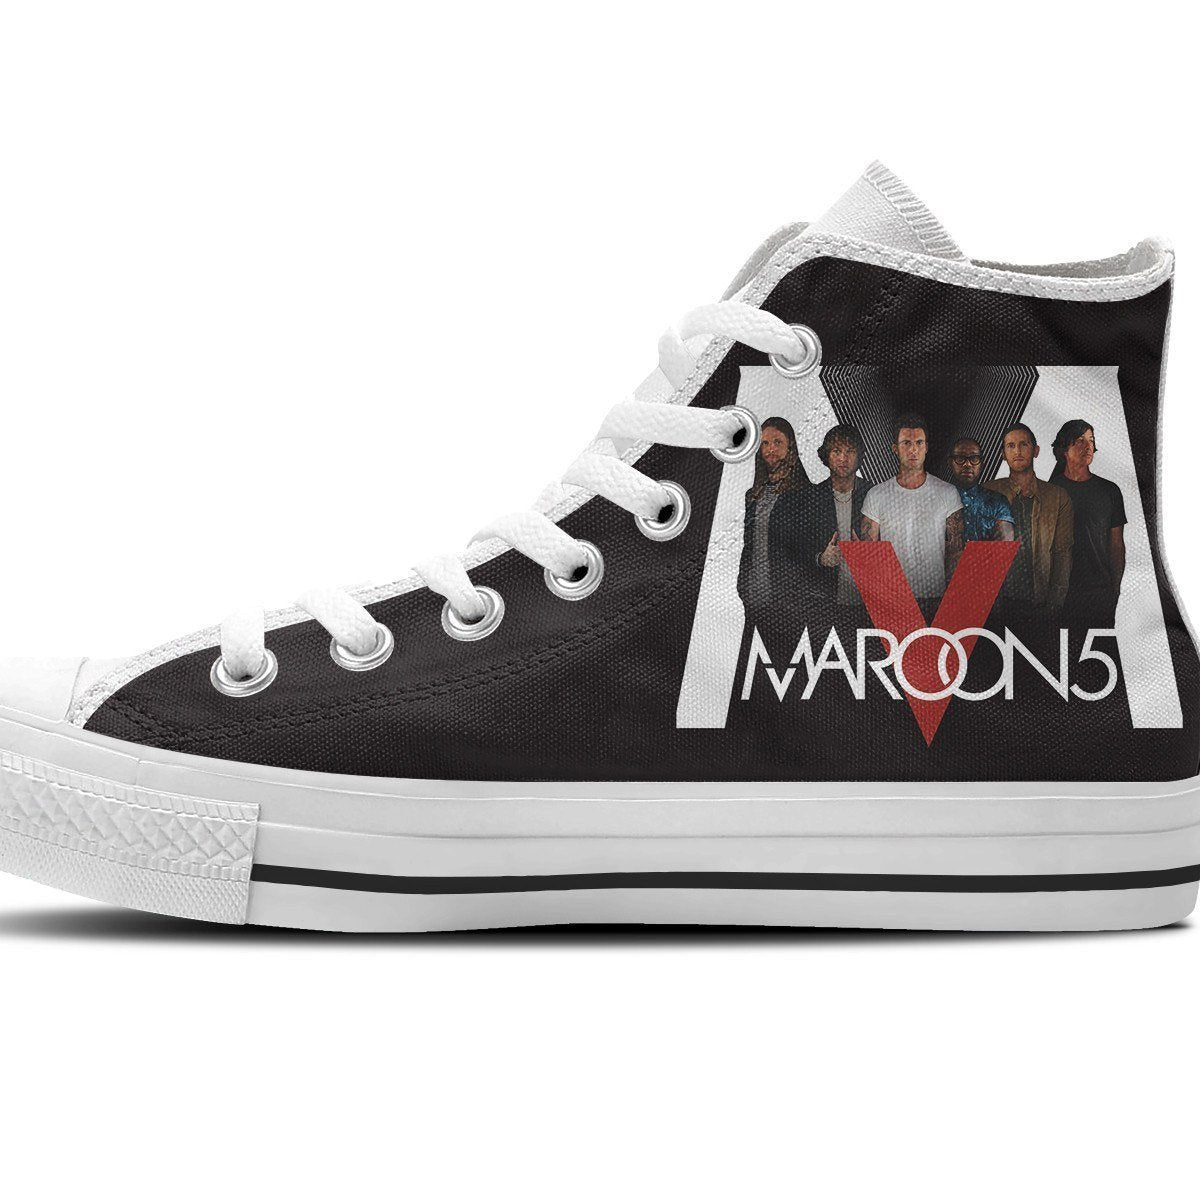 maroon 5 mens high top sneakers